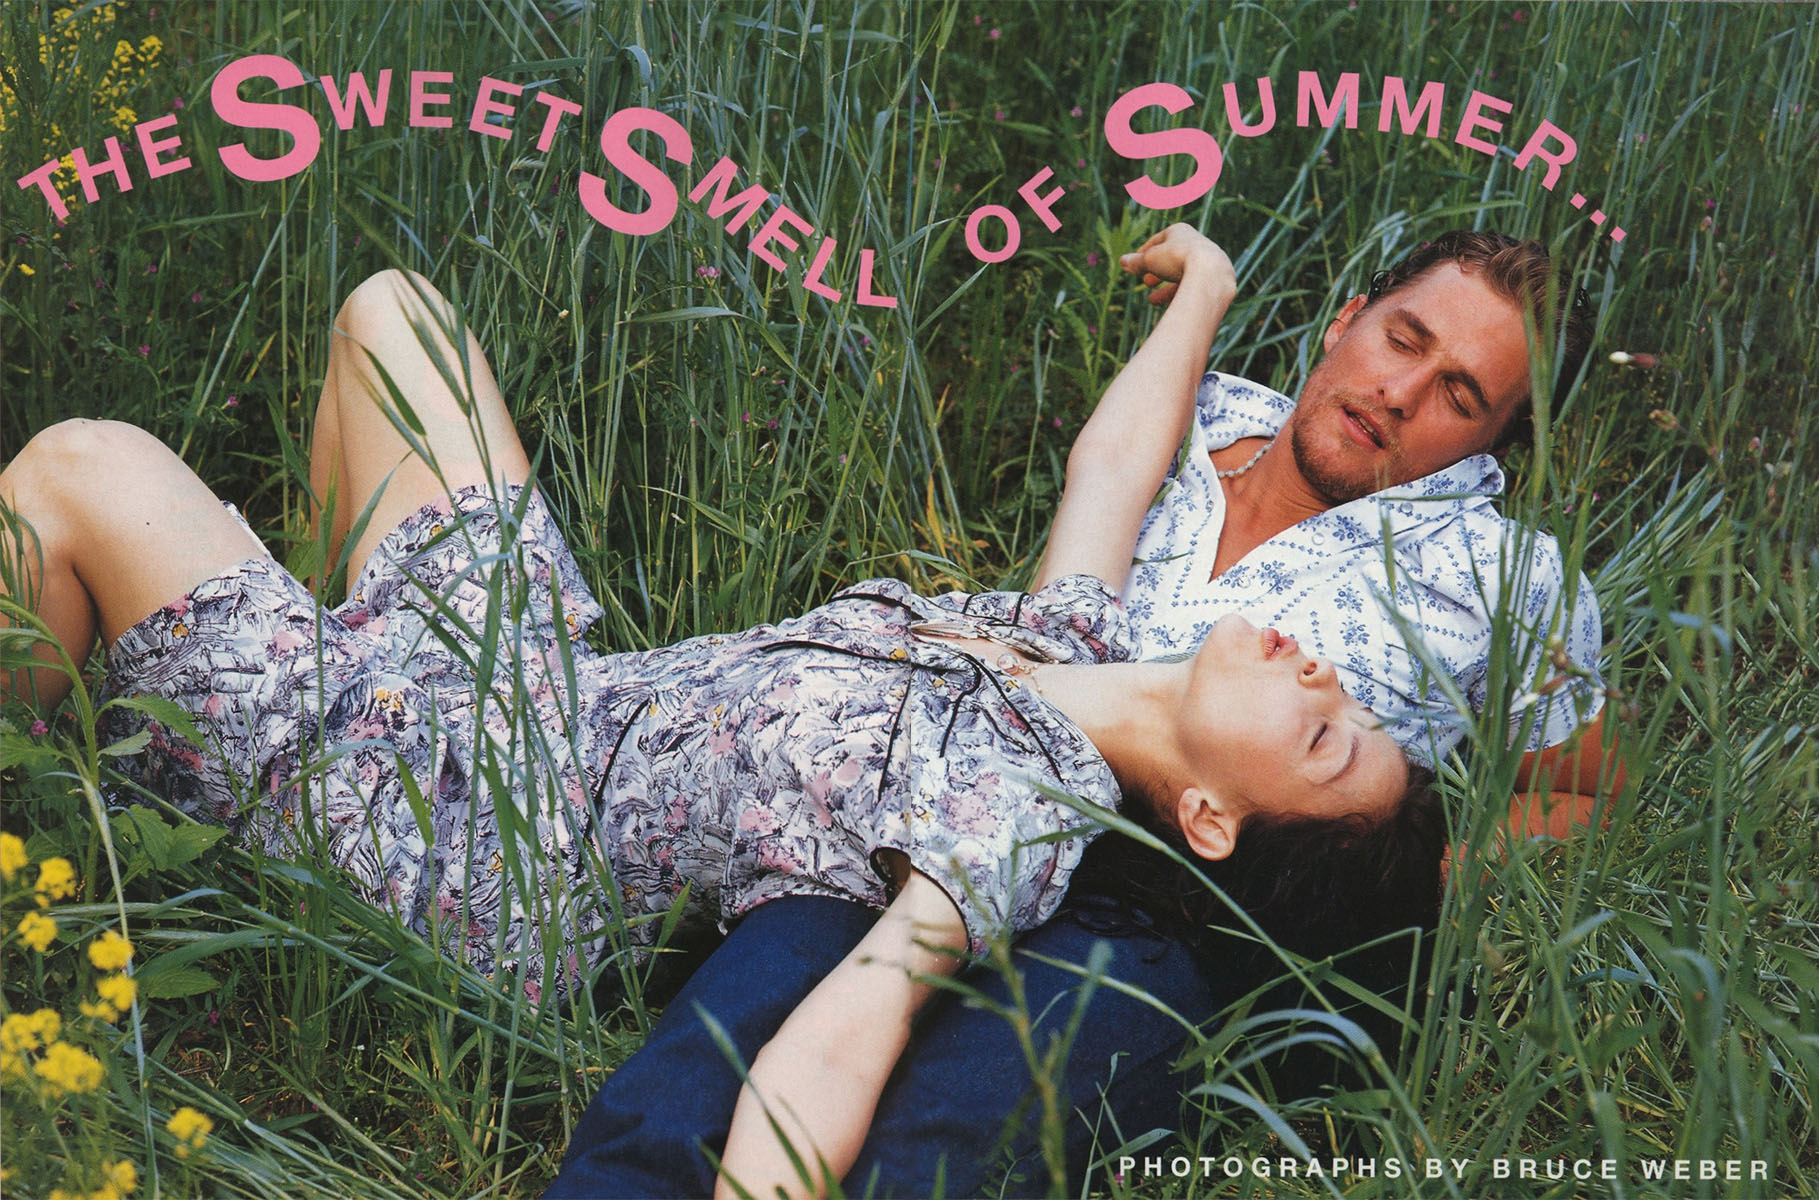 THE SWEET SMELL OF SUMMER | PHOTOGRAPHY BRUCE WEBER | VOGUE ITALIA N.562 | JUNE 1997